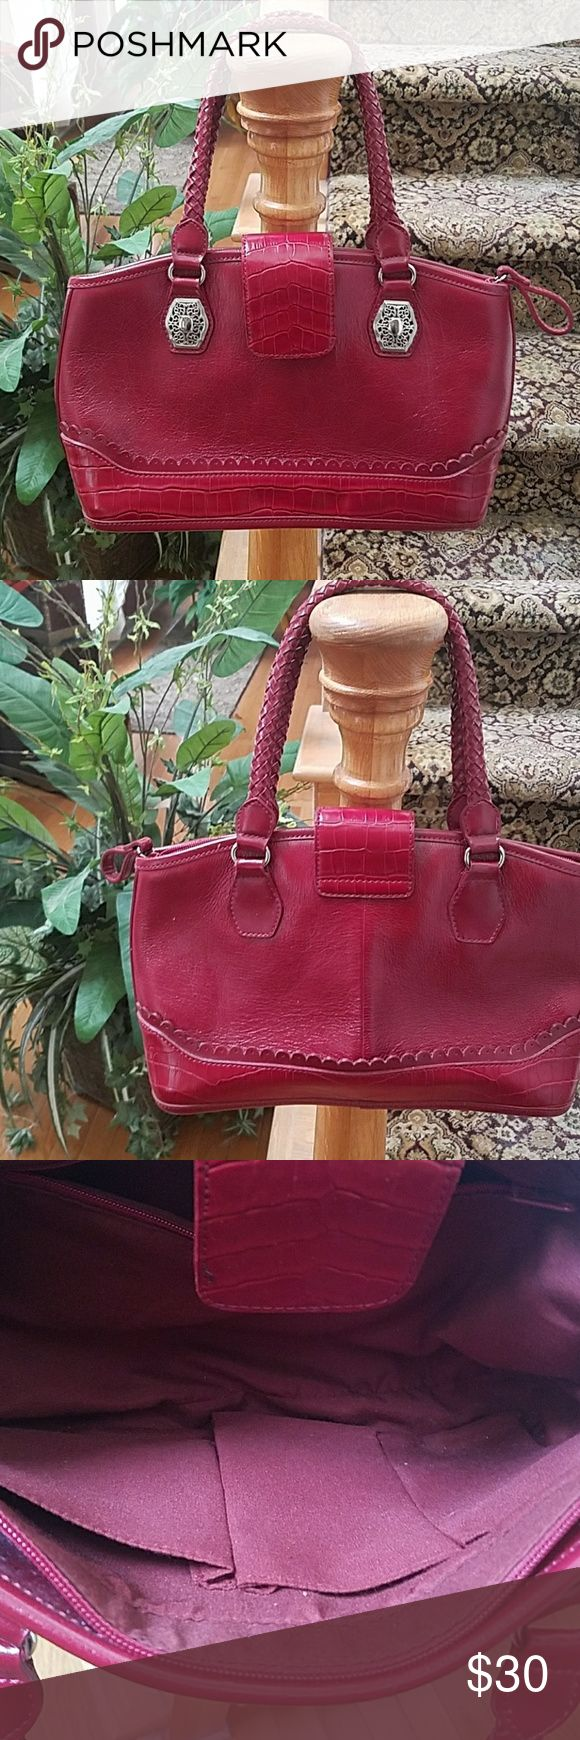 TUCKED AWAY IN A CLOSET RED HANDBAGS This nice bag has been tucked away for years. Clean inside and out. Has a zipper and 3 inside pockets. Magnetic closure outside. It's a medium size bag. The hardware is silver. Bags